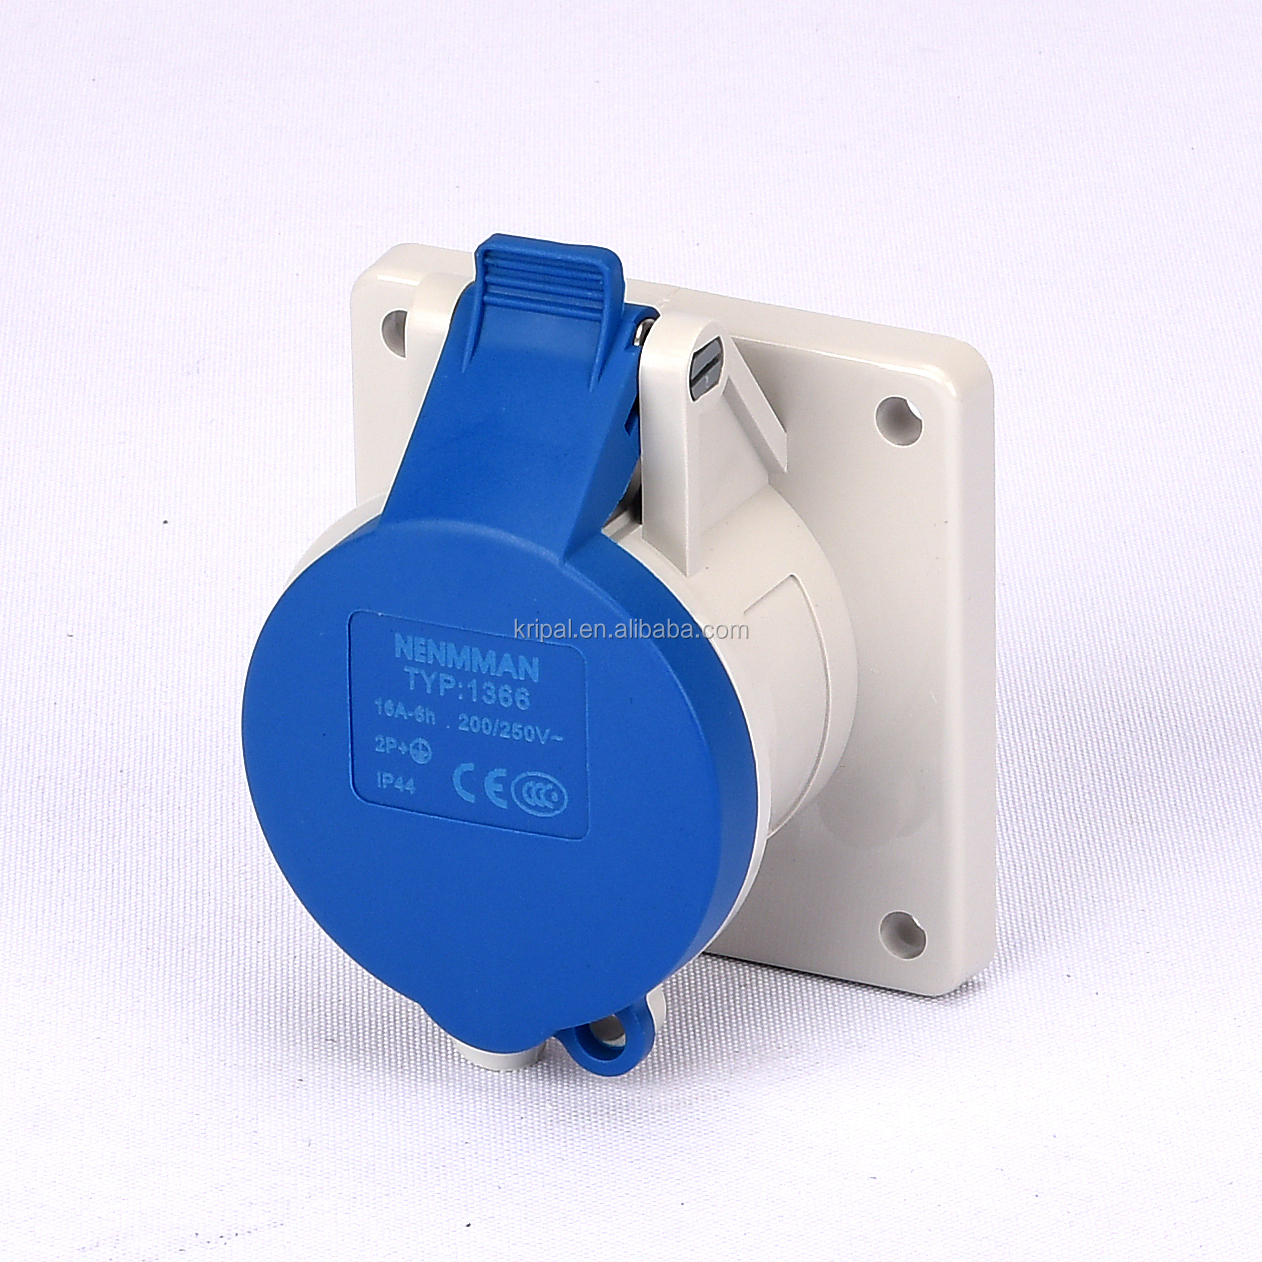 with Lock Security Box for CEE Sockets Waterproof